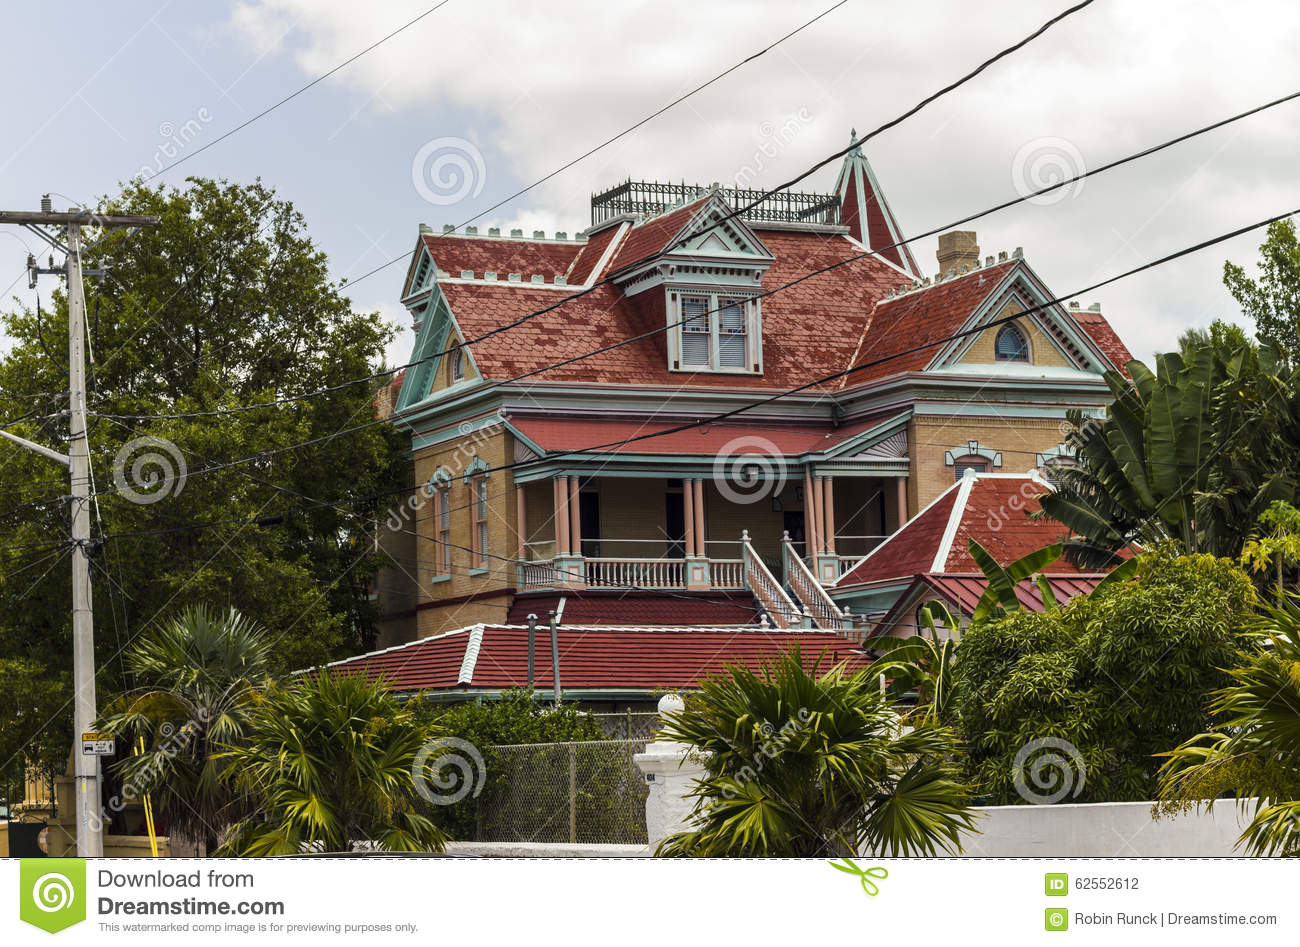 Key West Victorian Style House Stock Photo - Image of american ... Key West Historic Victorian House Plan on michigan victorian house plans, key west patio home plans, key west florida home plans, san francisco victorian house plans, key west bungalow plans,